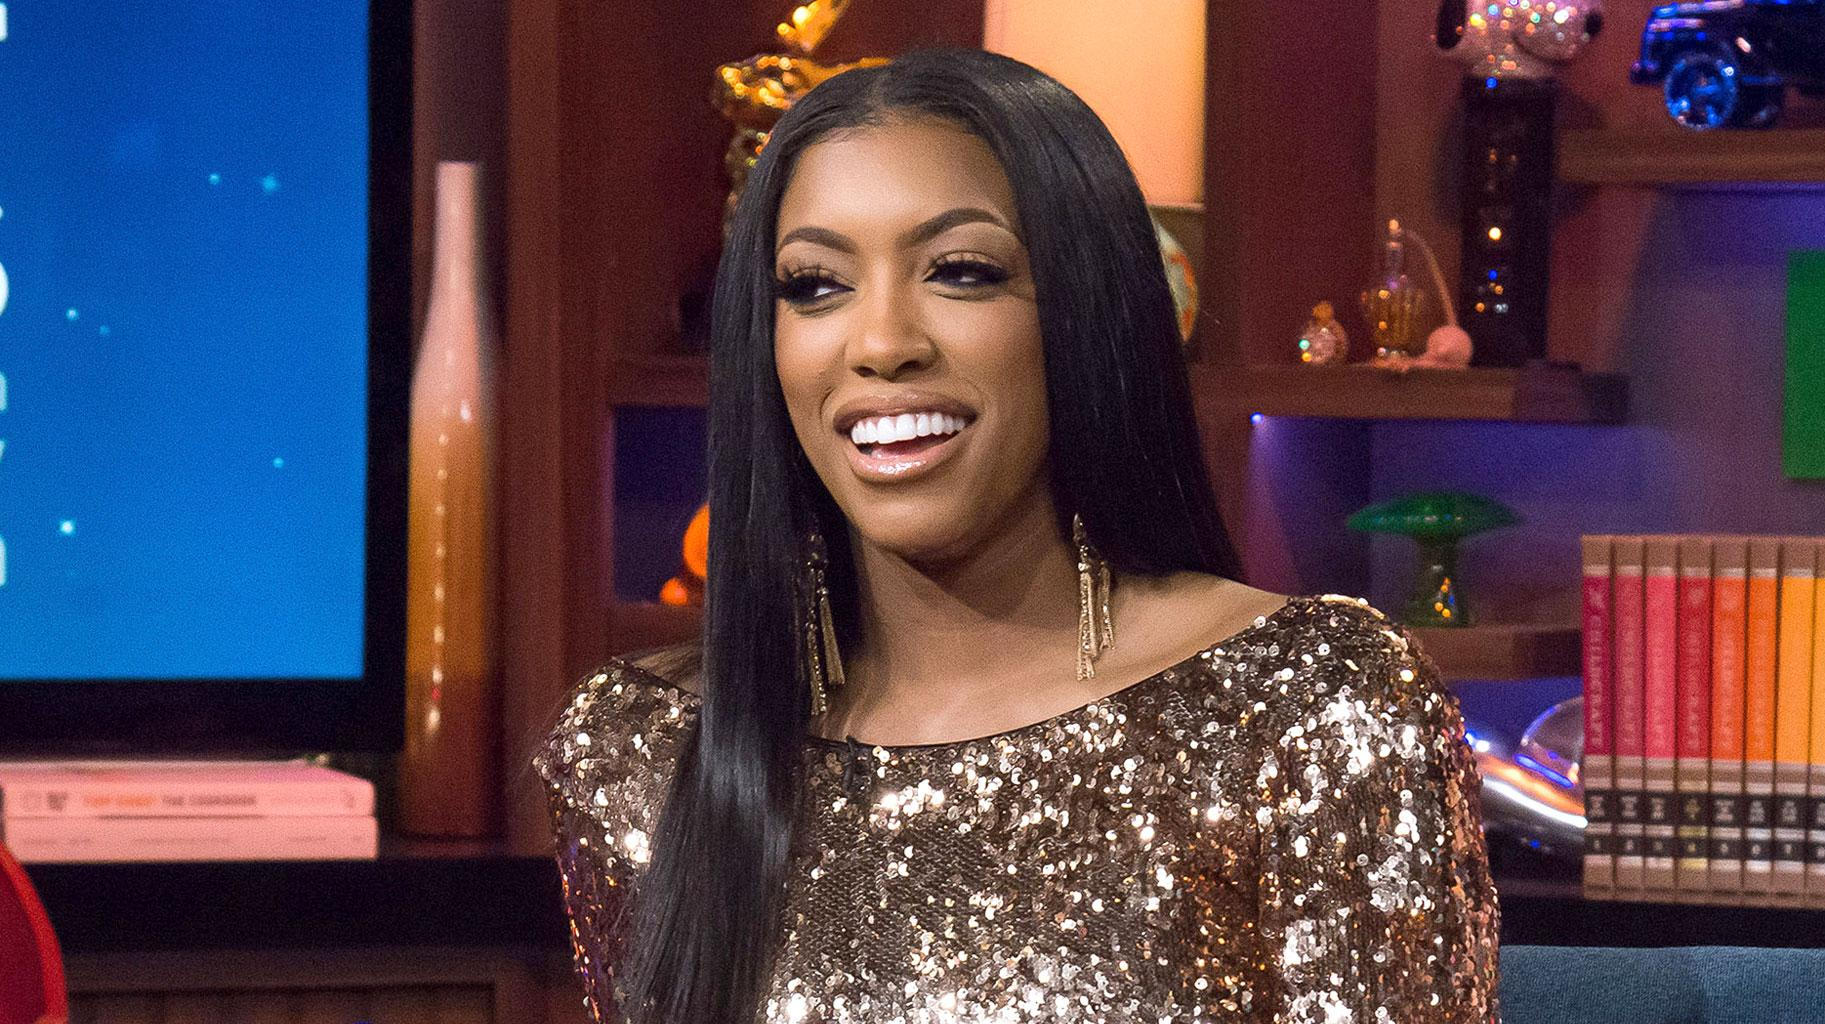 Porsha Williams Invites Fans To Start The Year Fresh With Her New Collection - See The New Products Here